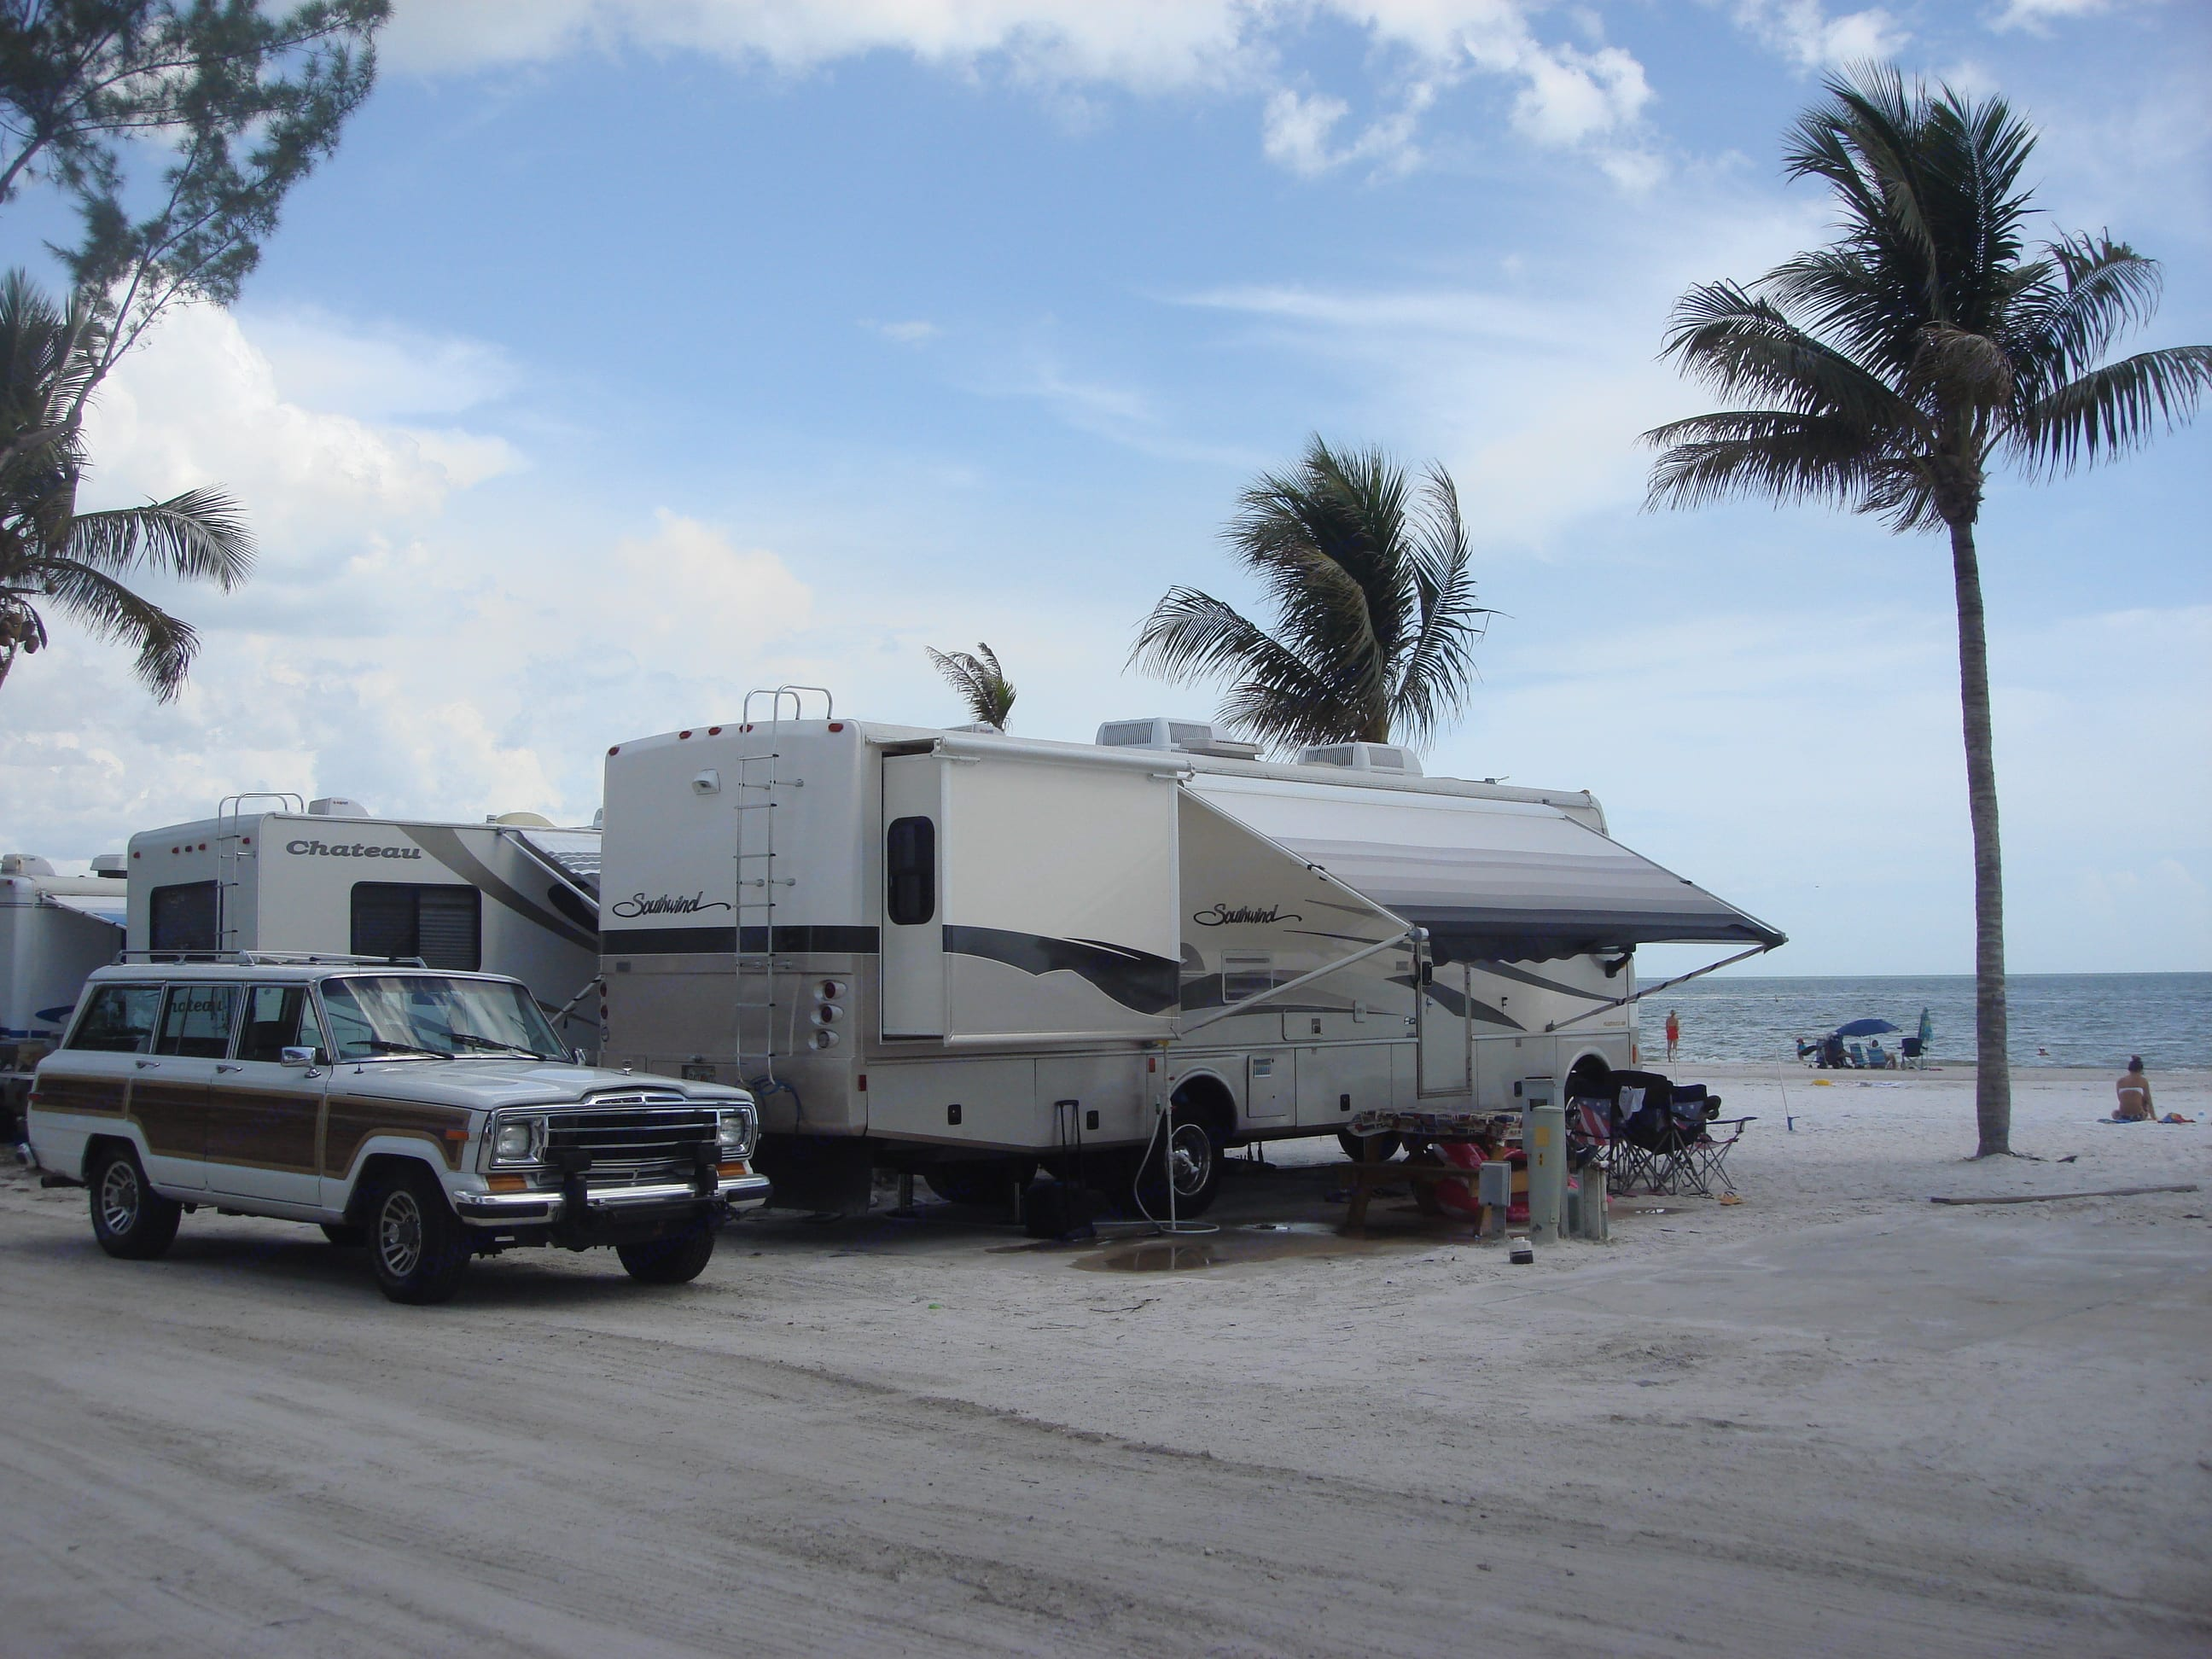 beach front property. Fleetwood Southwind 2003